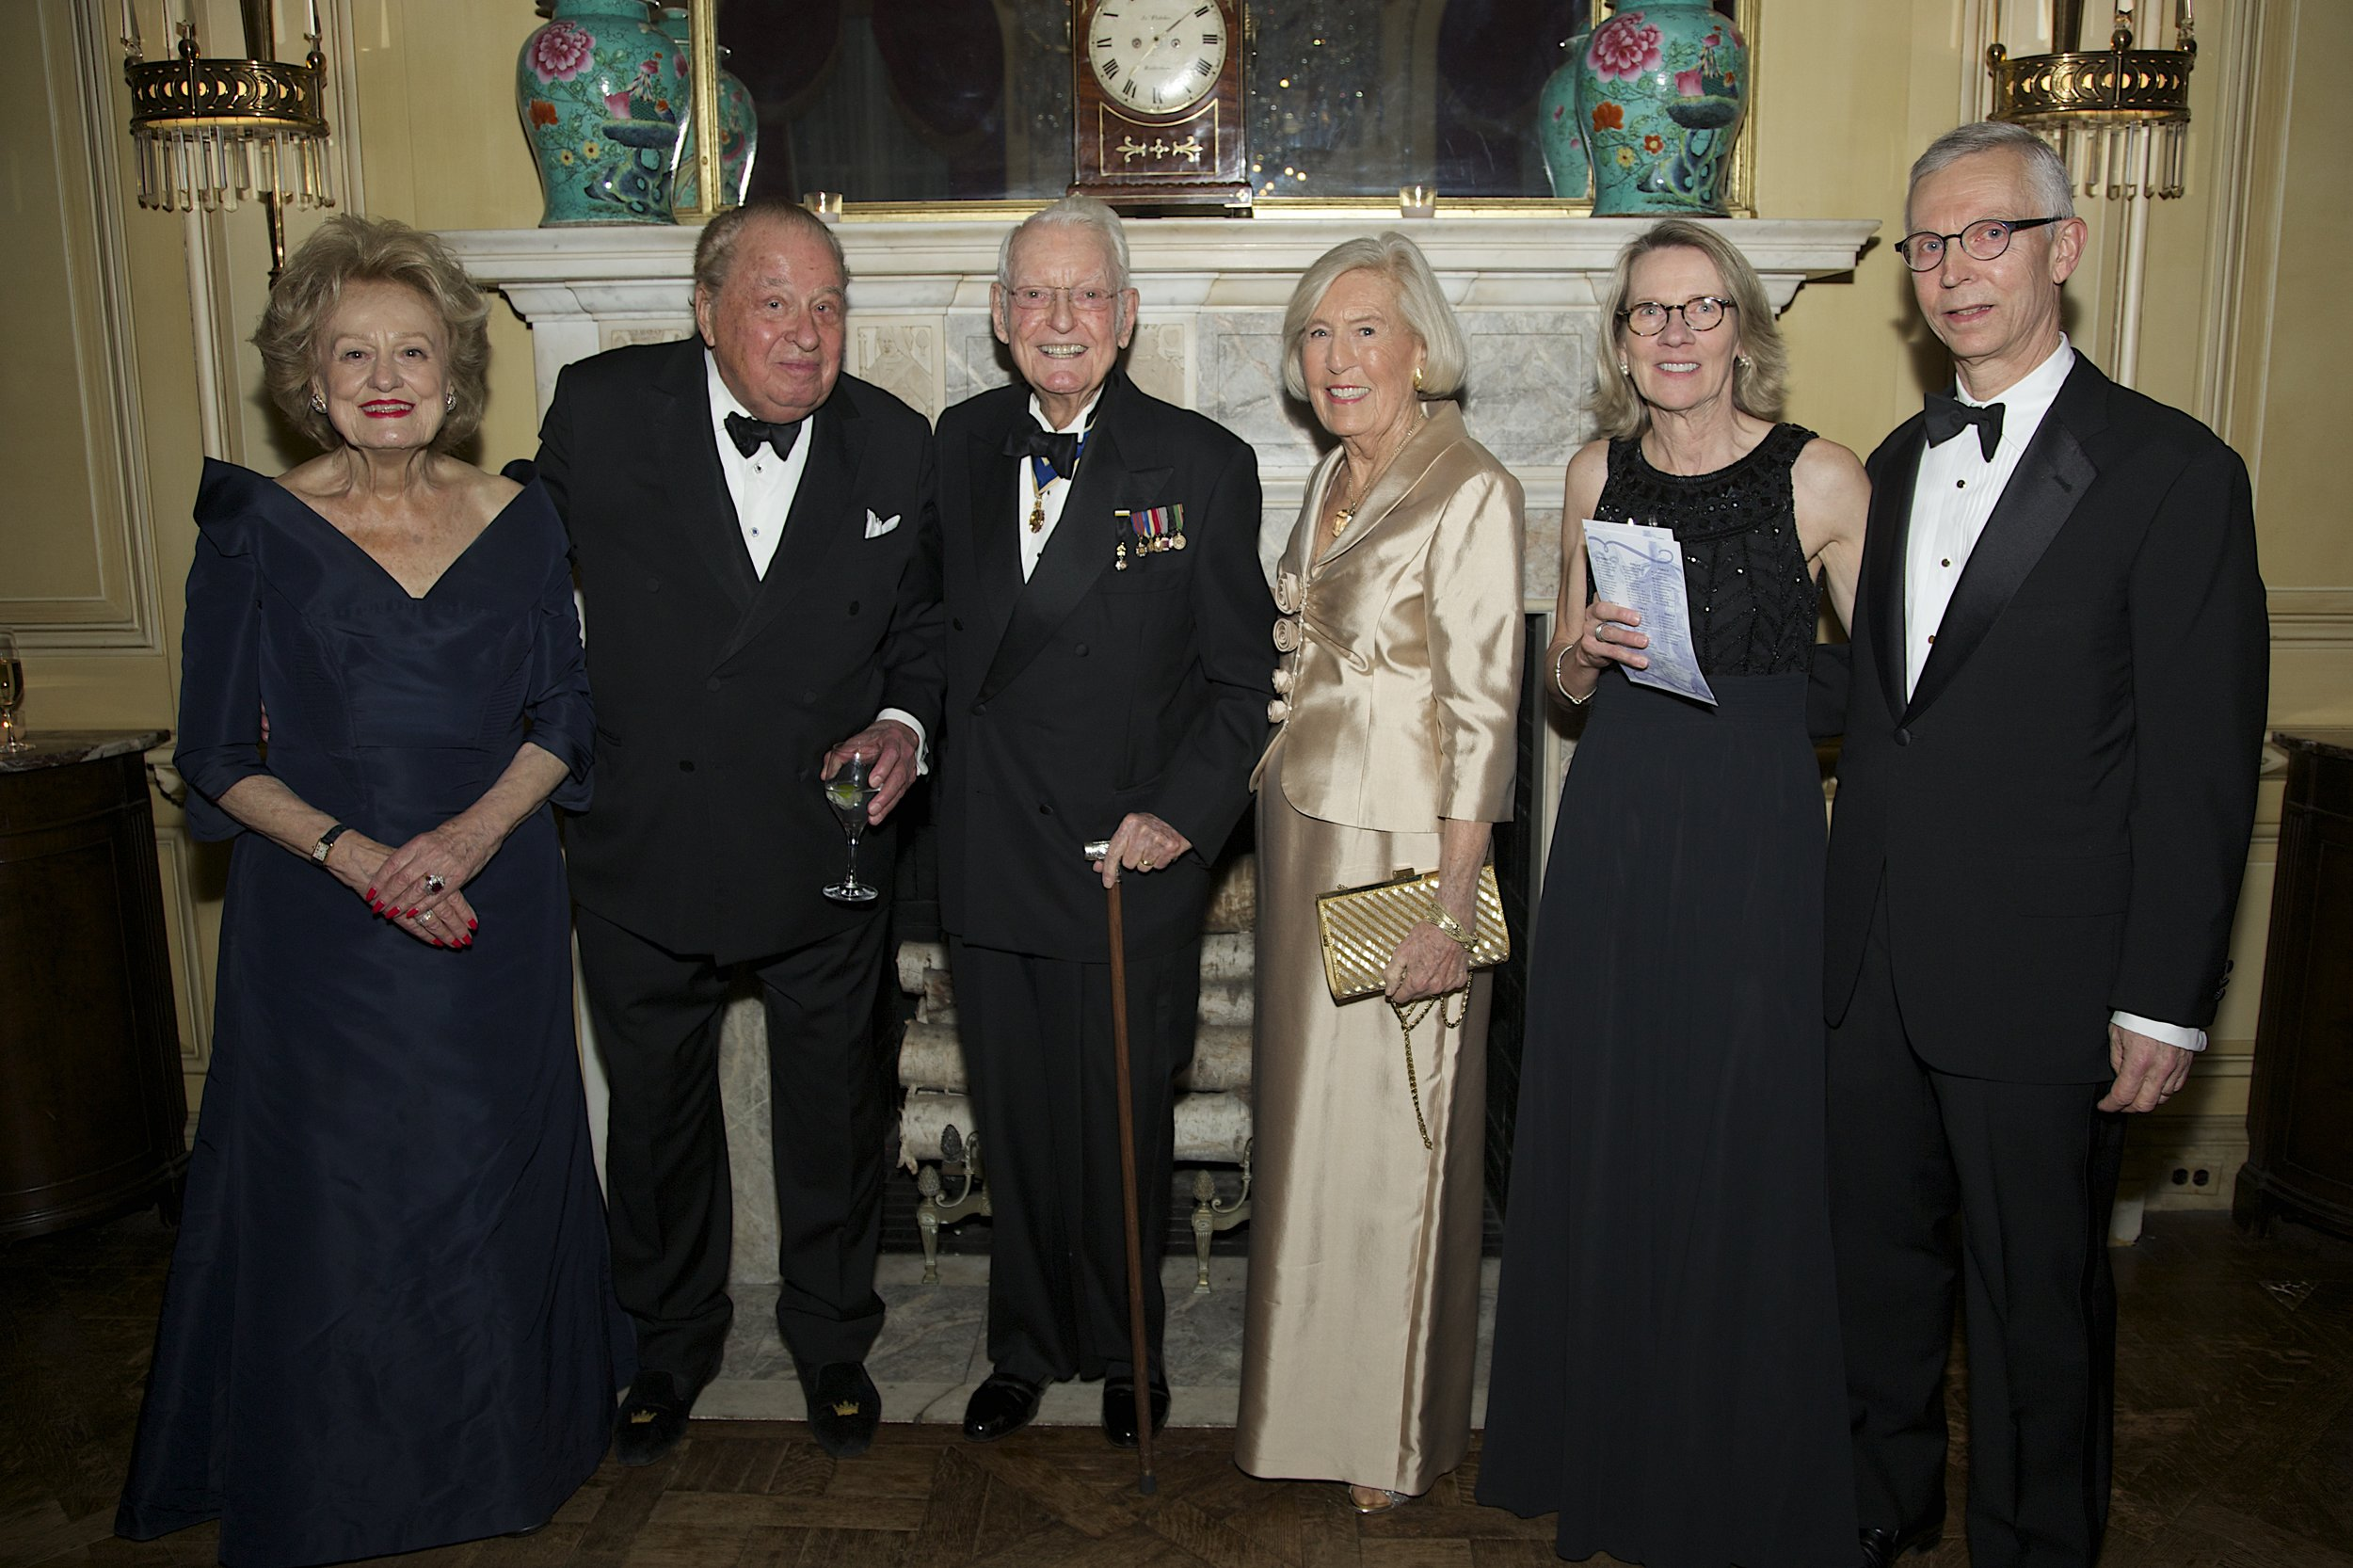 (From left) Elizabeth and Stanley DeForest Scott, Mr. F. Daniel Le Vert Coleman, Ingeborg Coleman, Mrs. Joan Norfleet, and Mr. Christopher Norfleet, Second Vice President, SRNY.